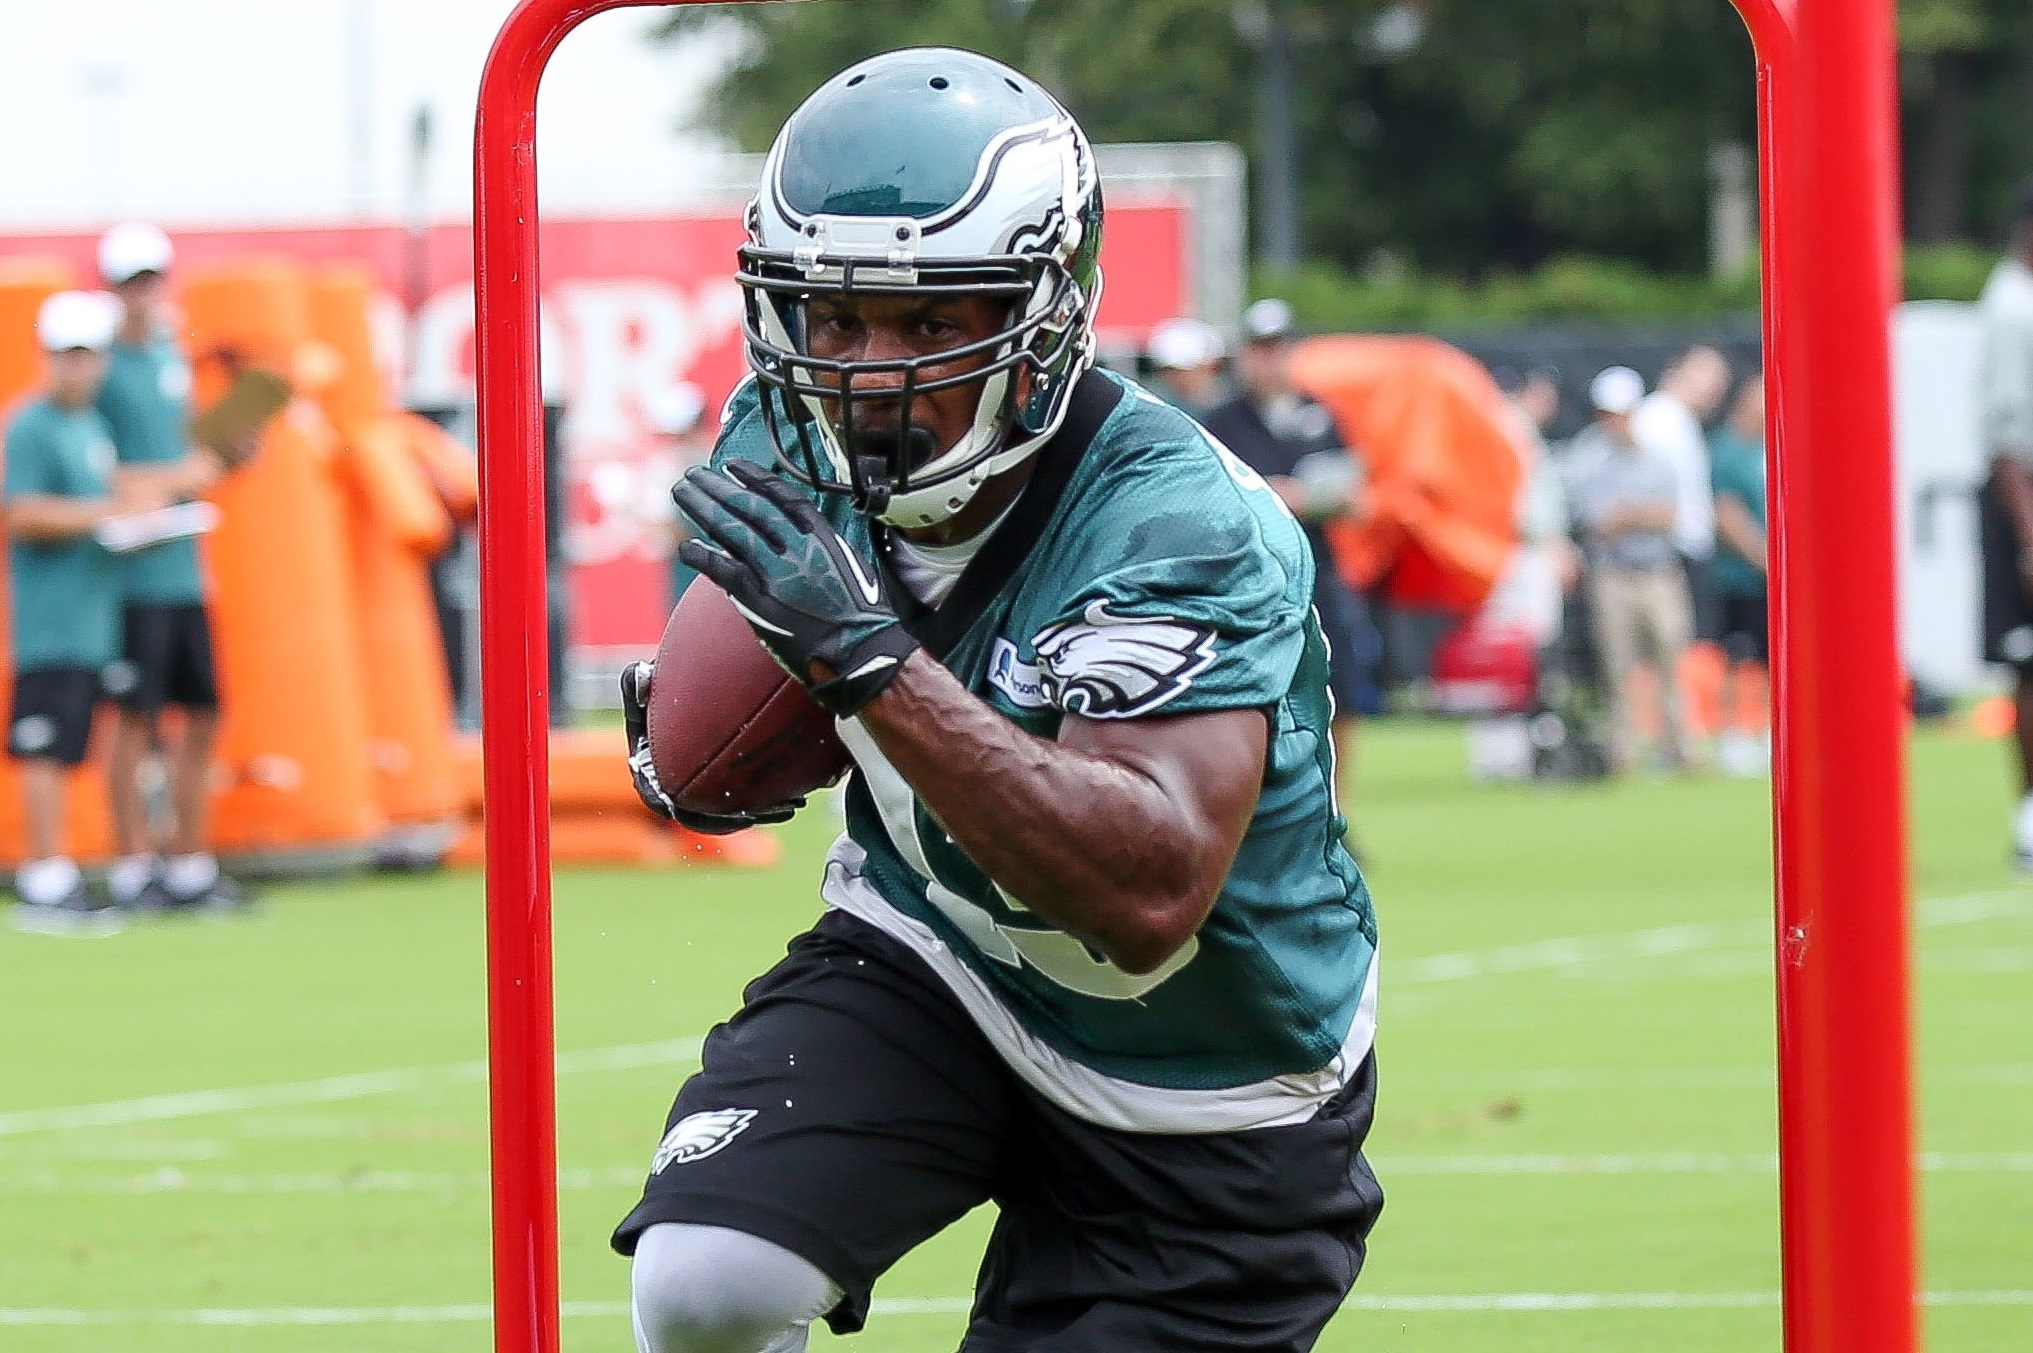 Can Darren Sproles replace DeSean Jackson for the Eagles?